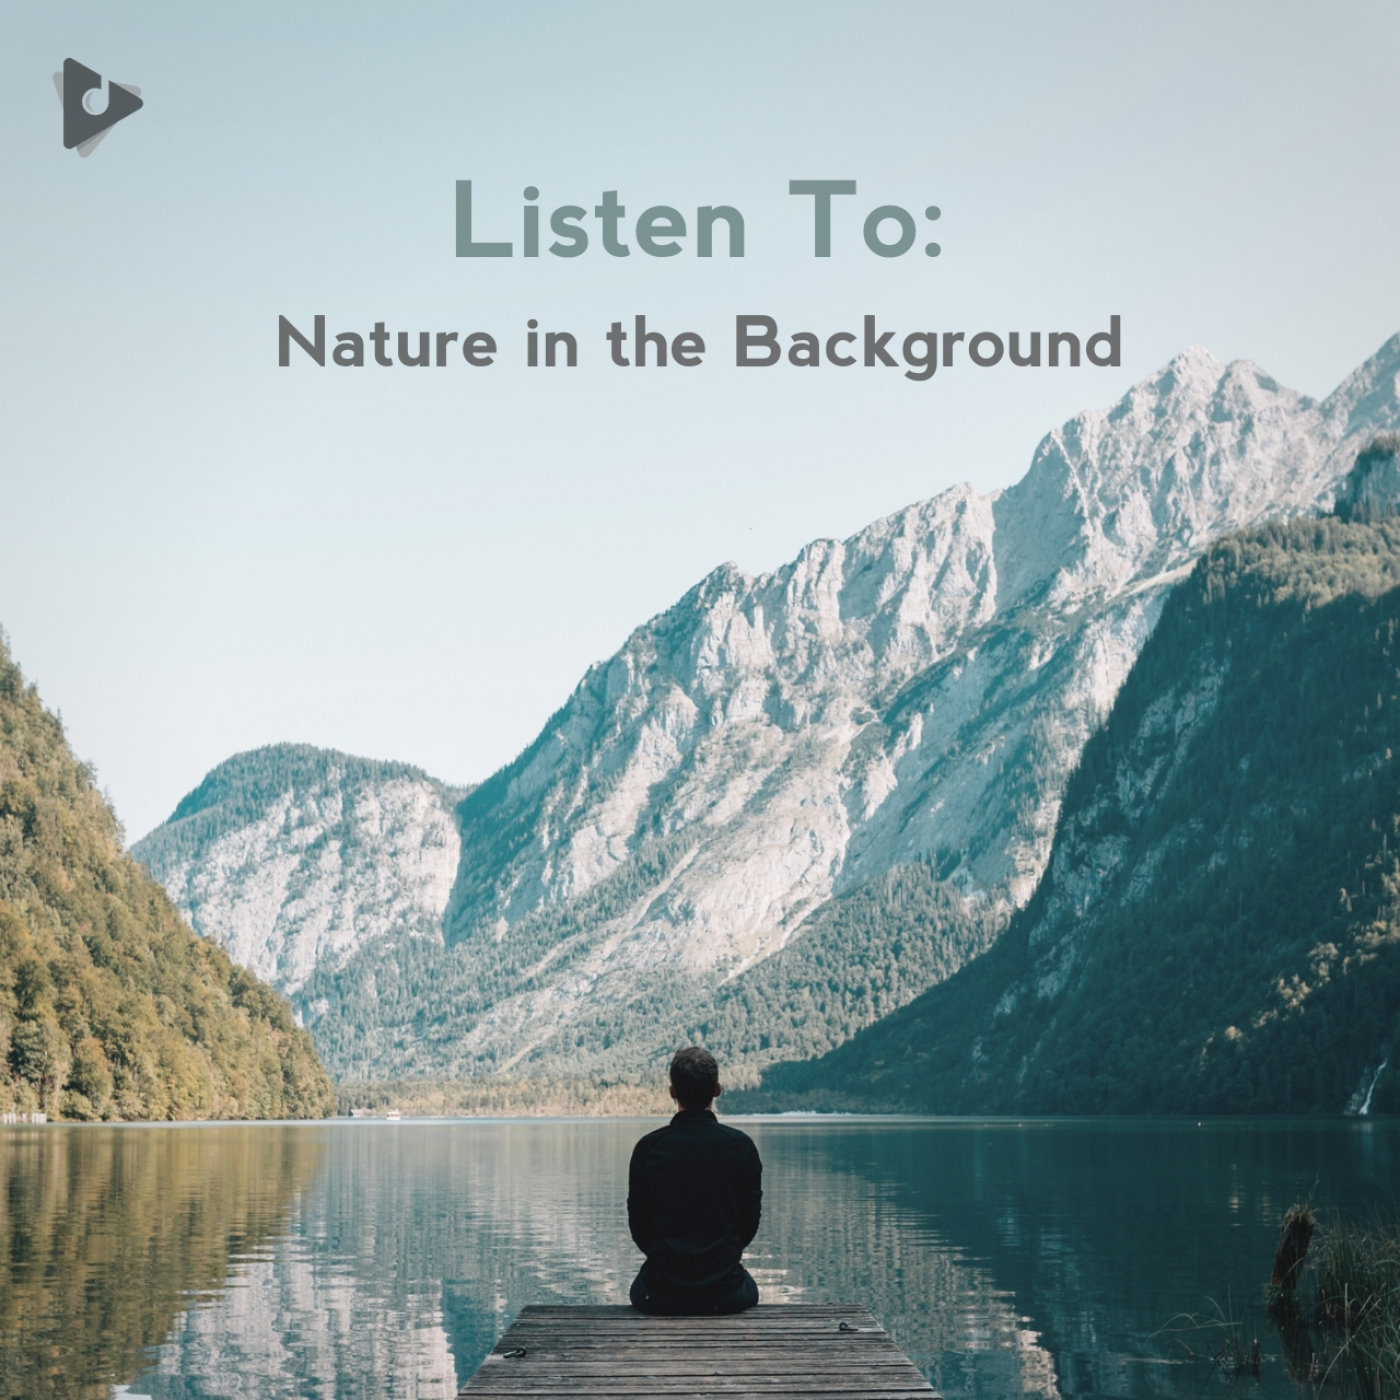 Listen To: Nature in the Background